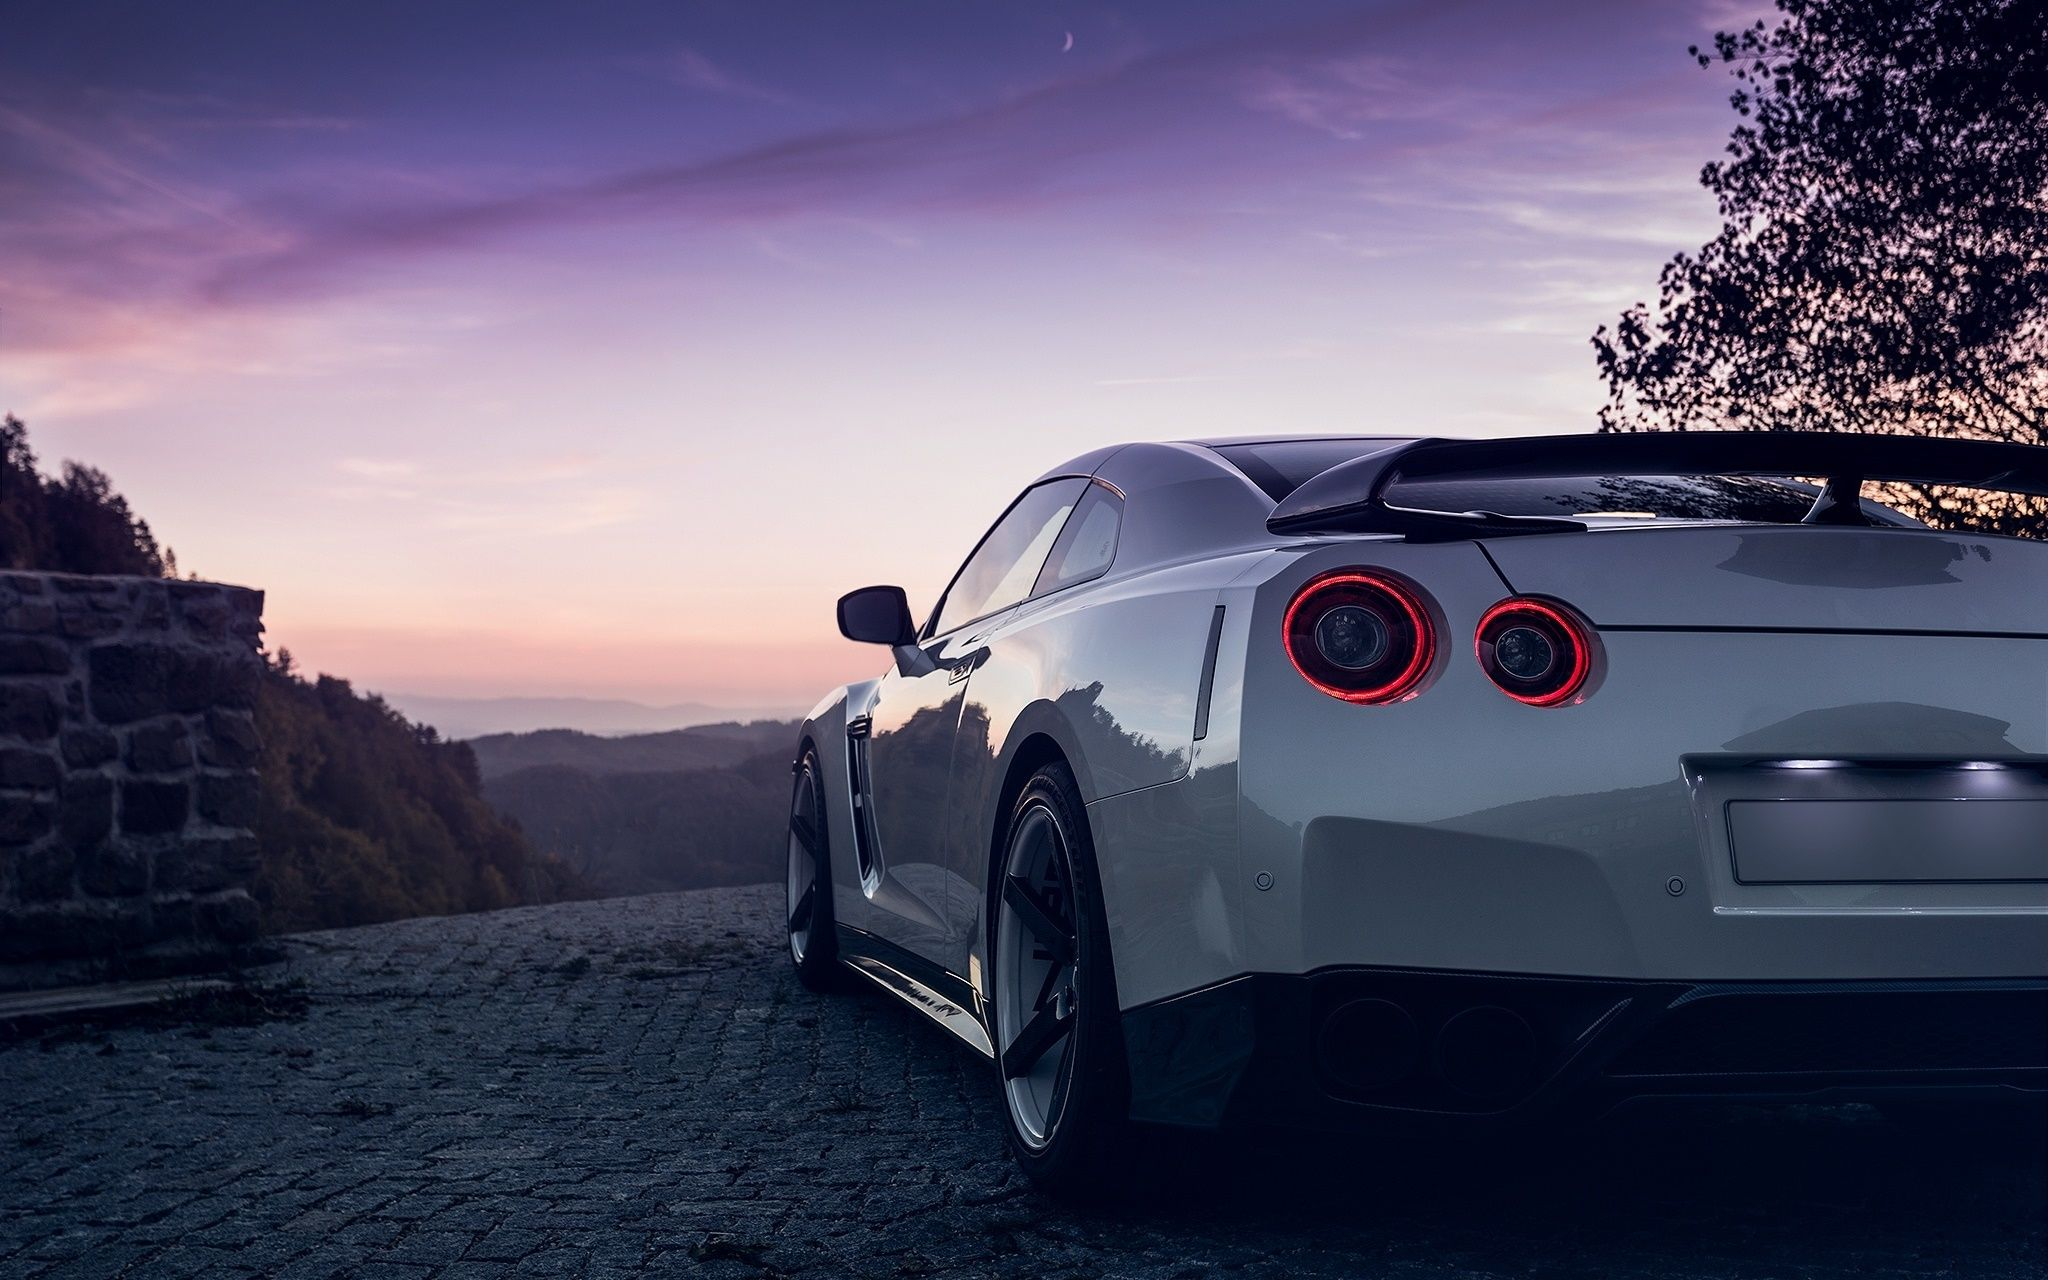 Nissan GT R Wallpapers   Top Nissan GT R Backgrounds 2048x1280